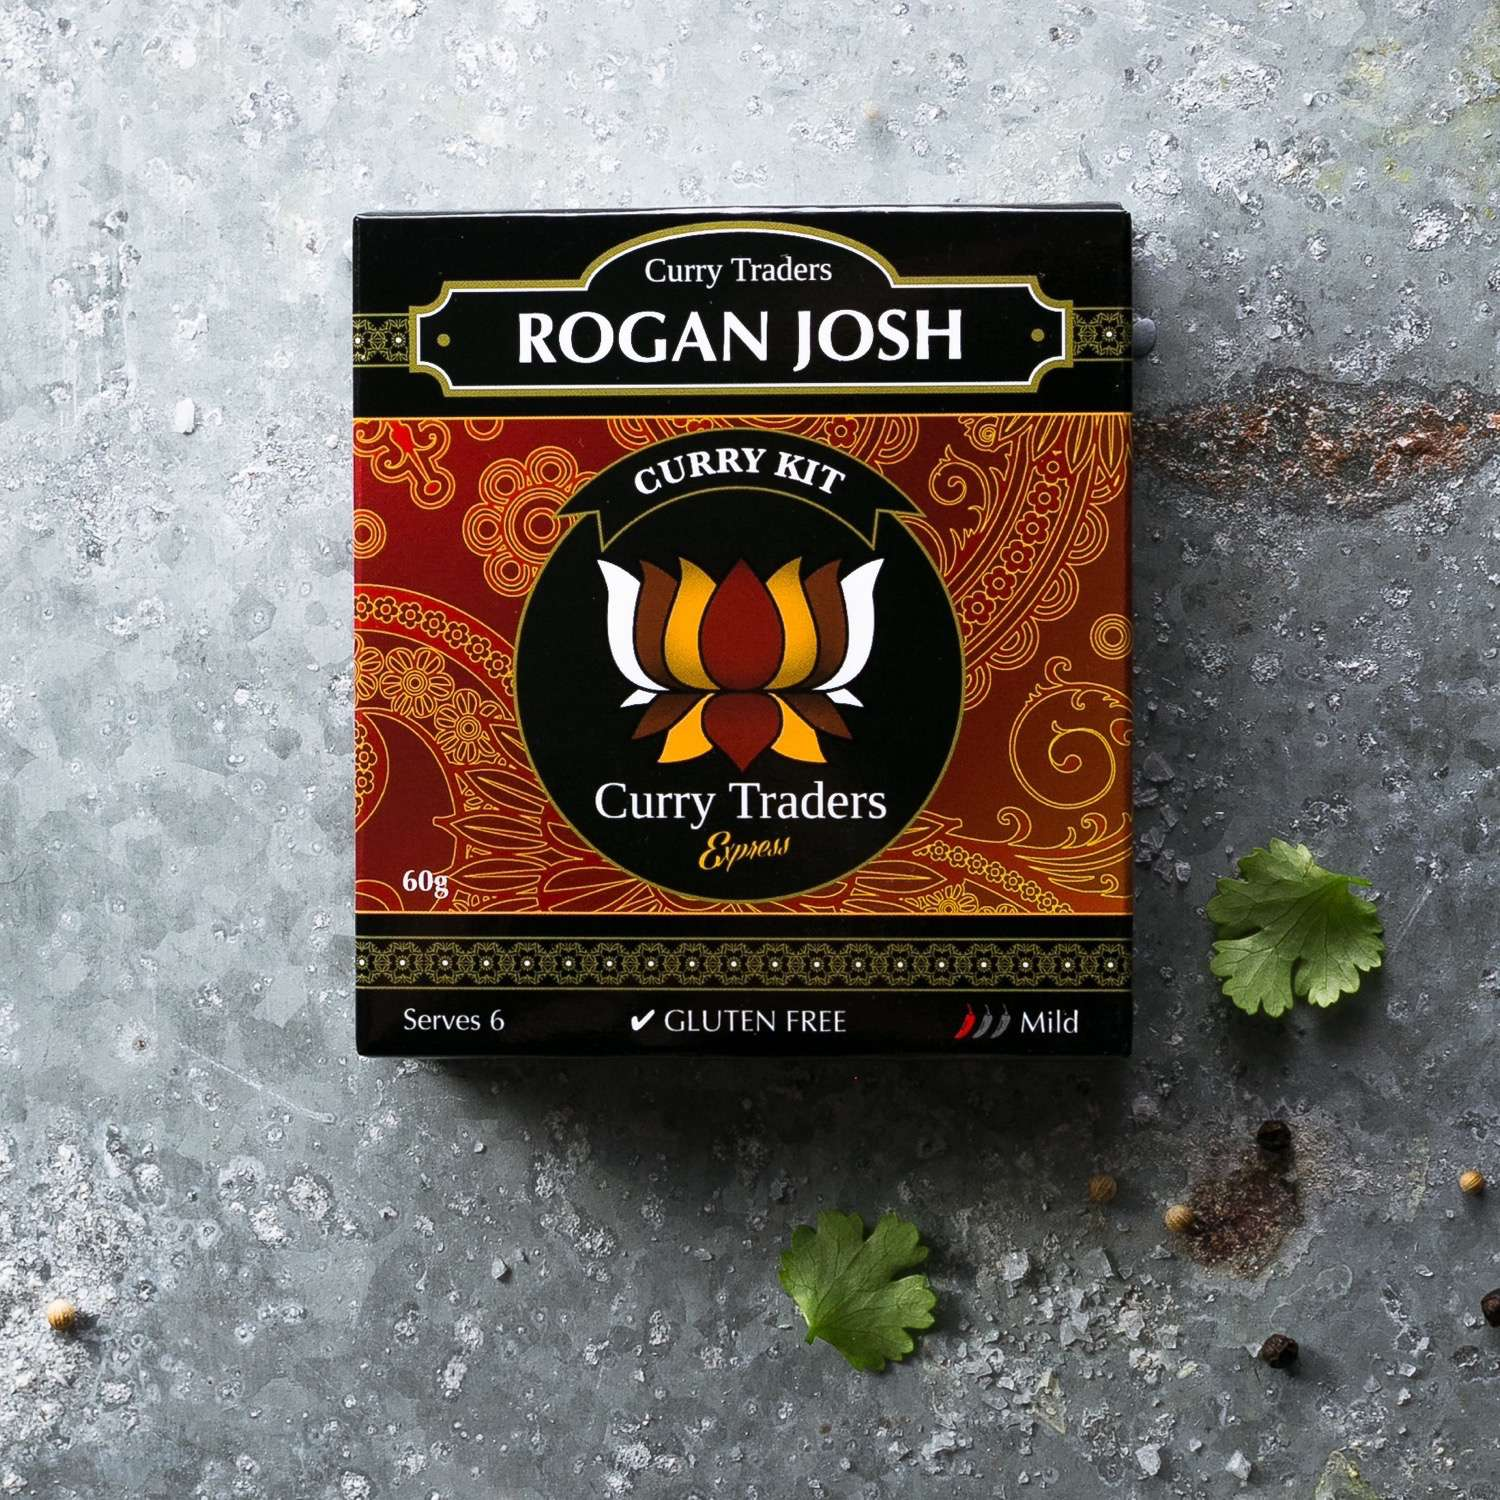 Rogan Josh Make at home curry kit